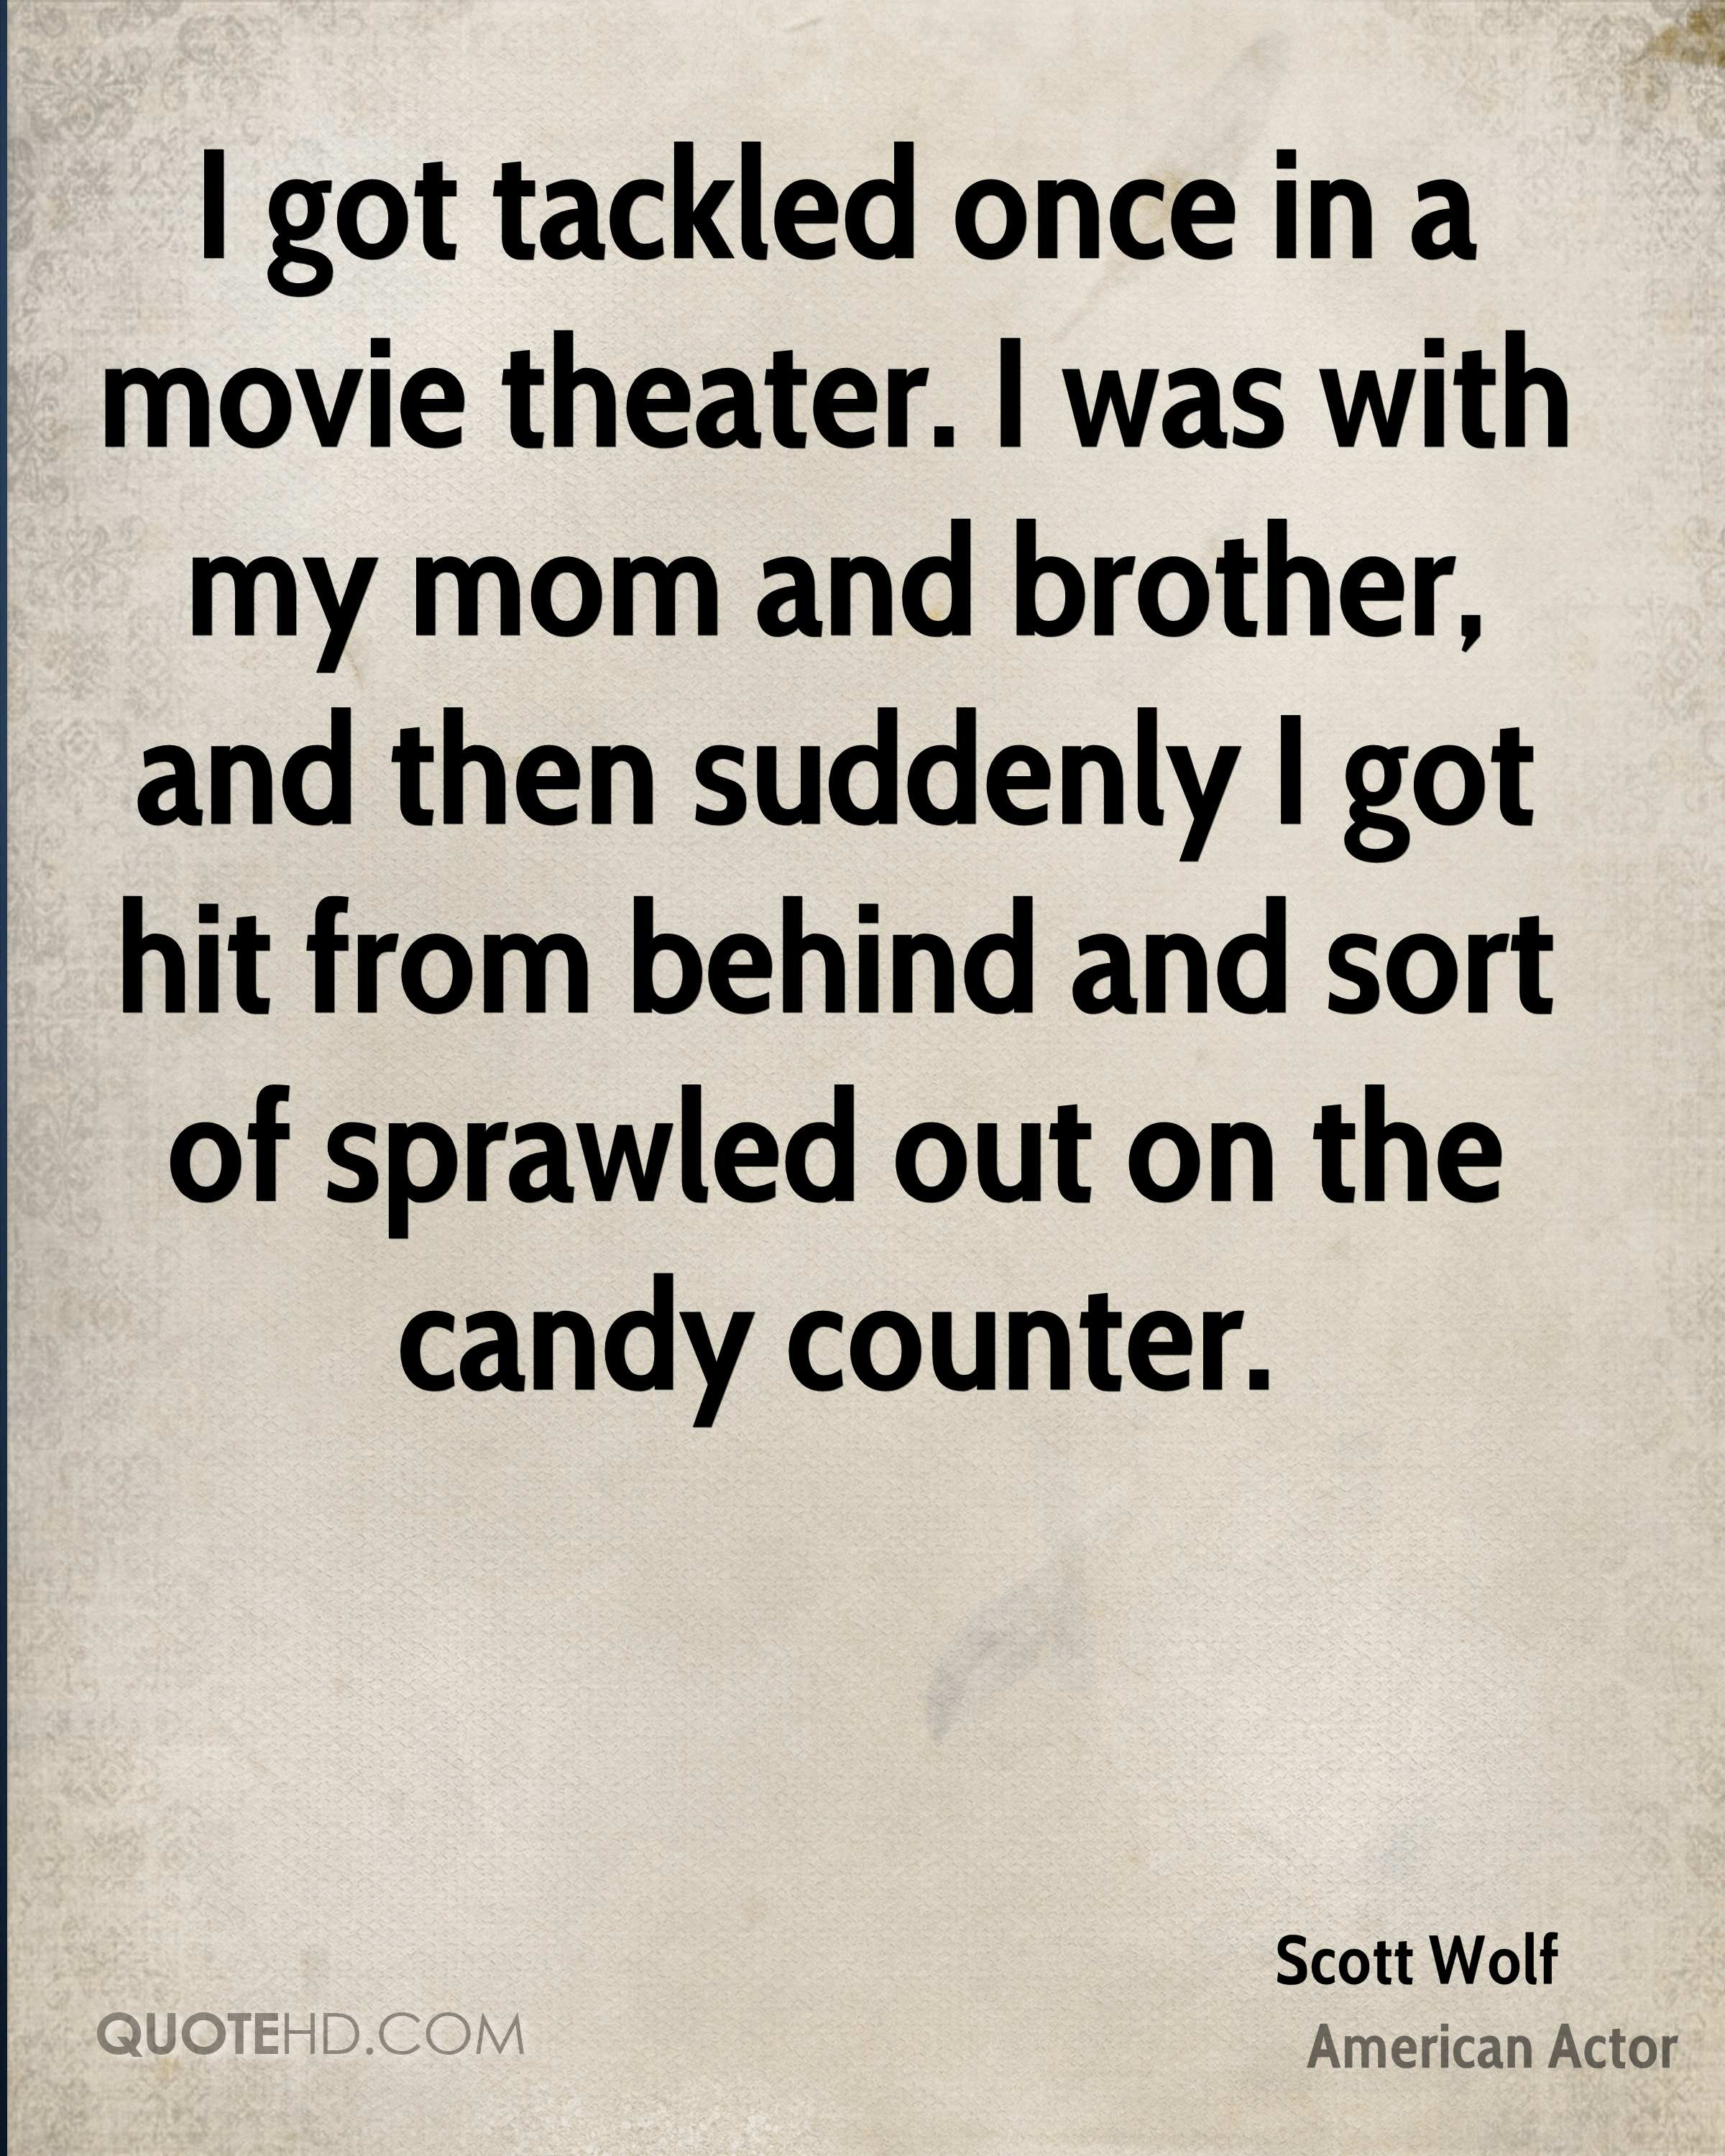 I got tackled once in a movie theater. I was with my mom and brother, and then suddenly I got hit from behind and sort of sprawled out on the candy counter.